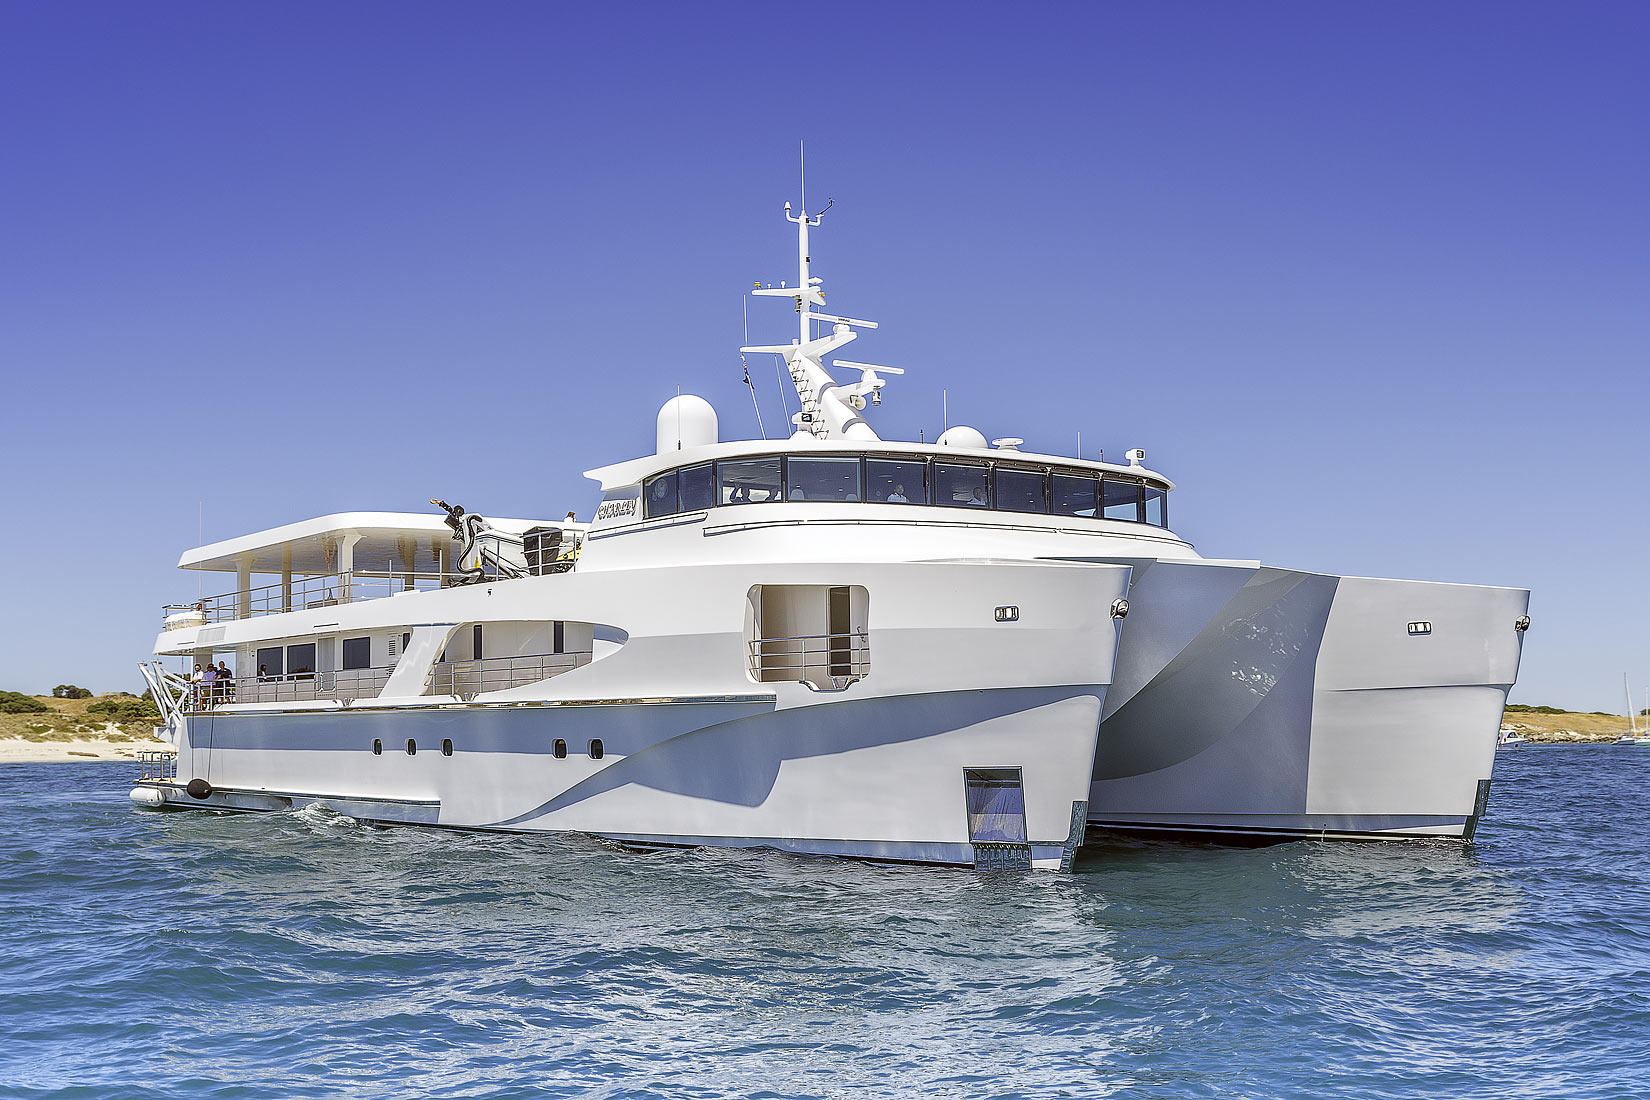 The Superyacht, 'Charley' has been delivered.